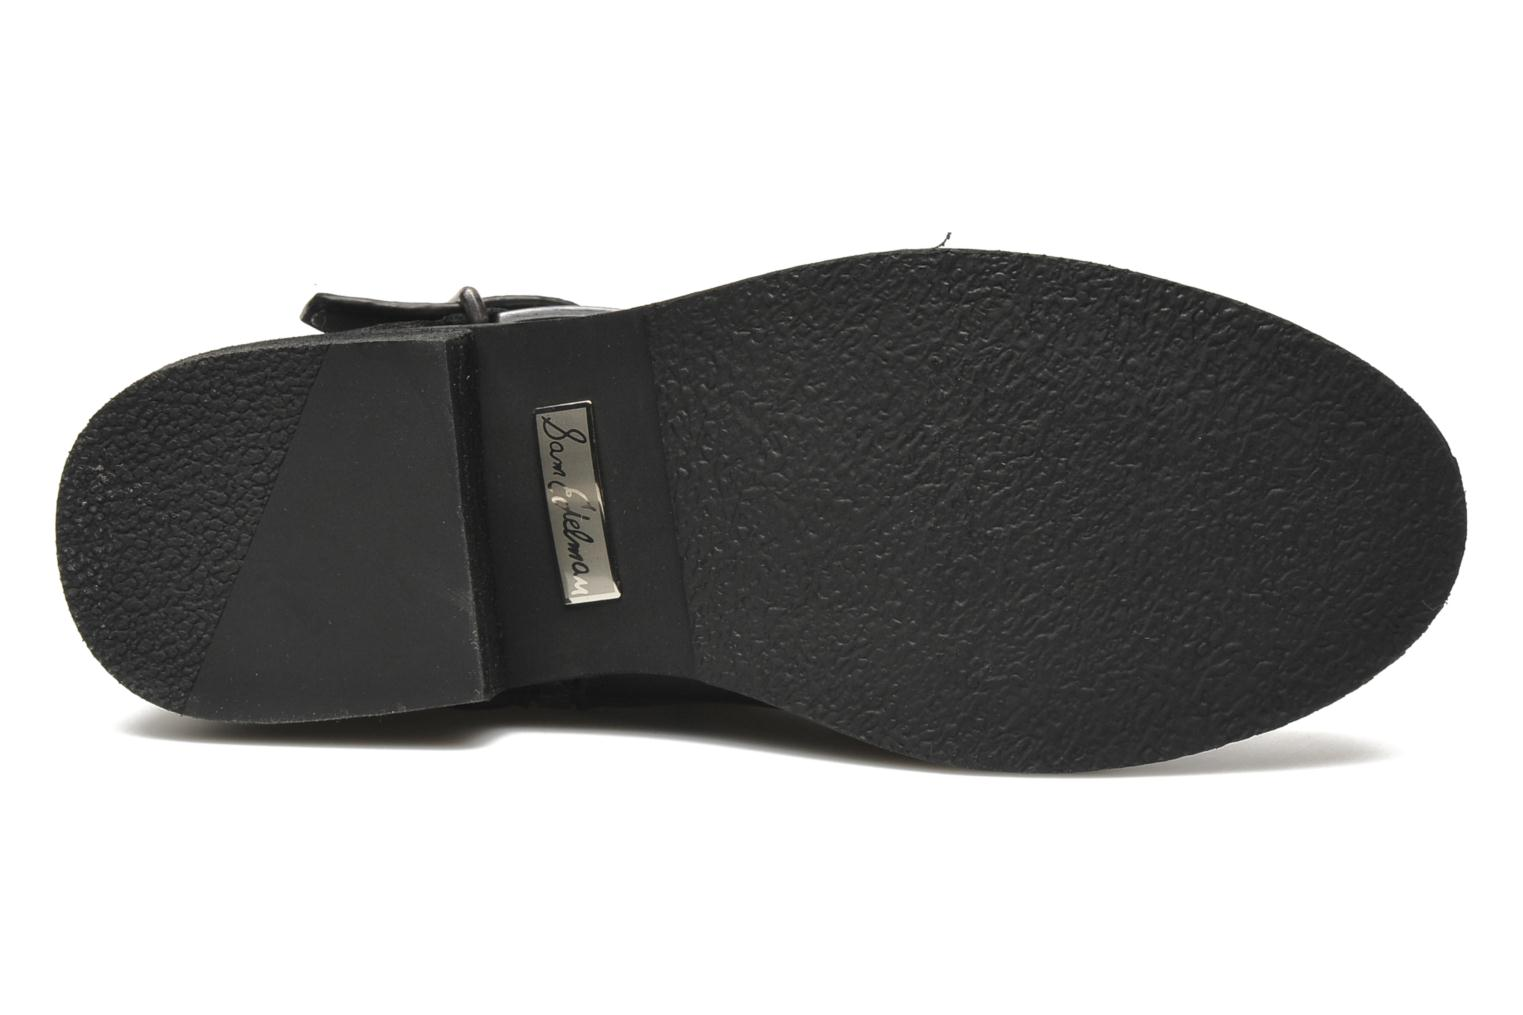 Bevin Black leather